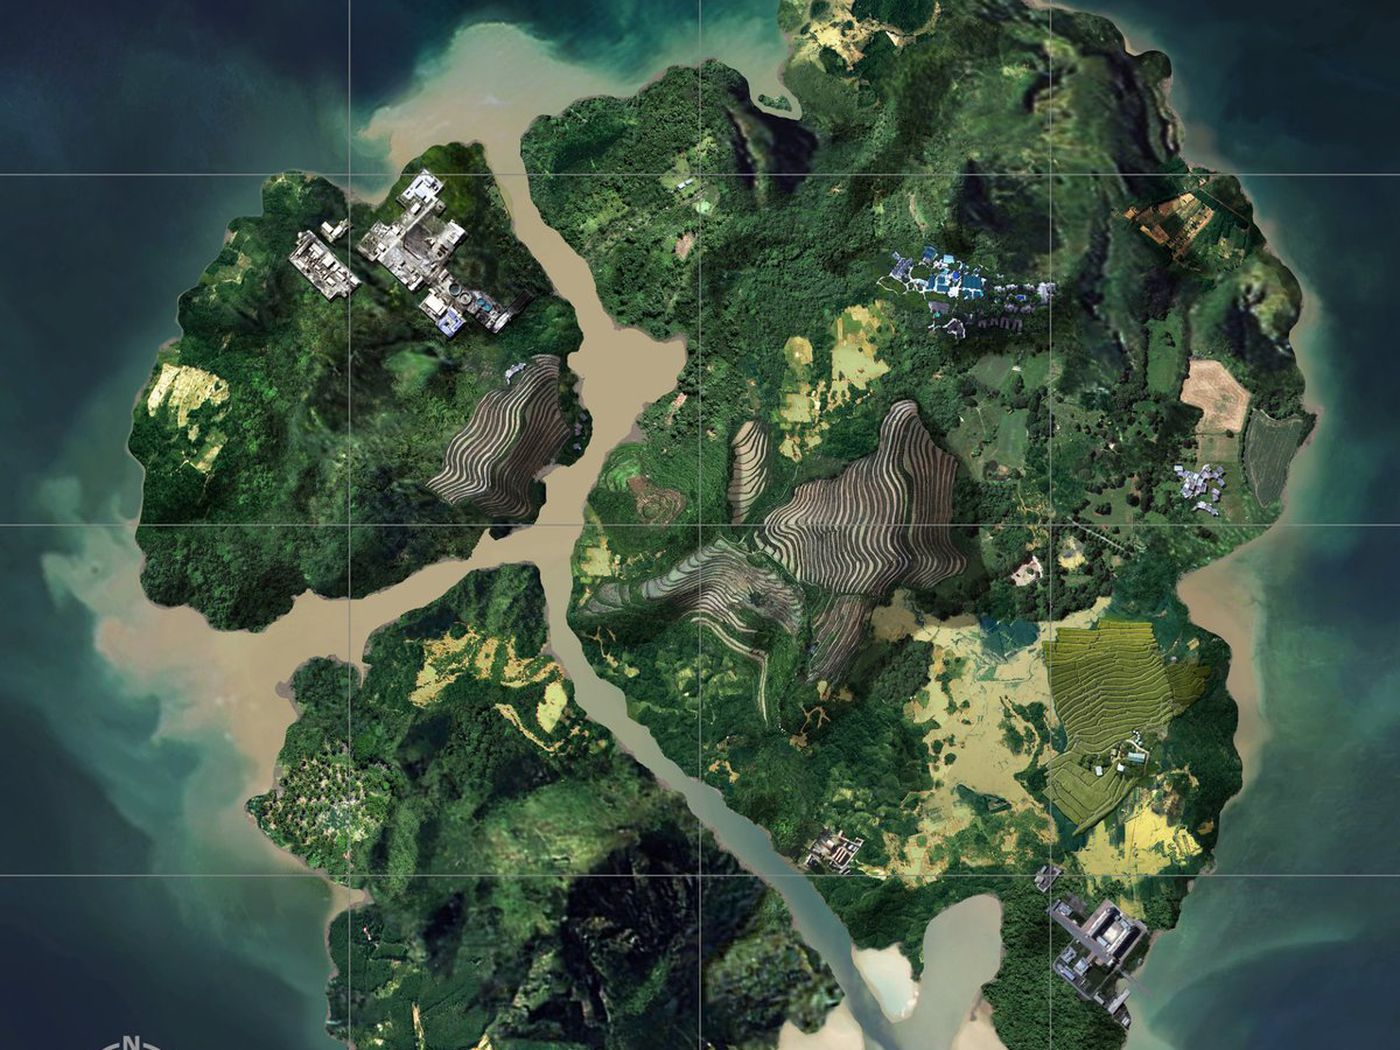 Pubg S New Smaller Island Map Is A Direct Response To The Popularity